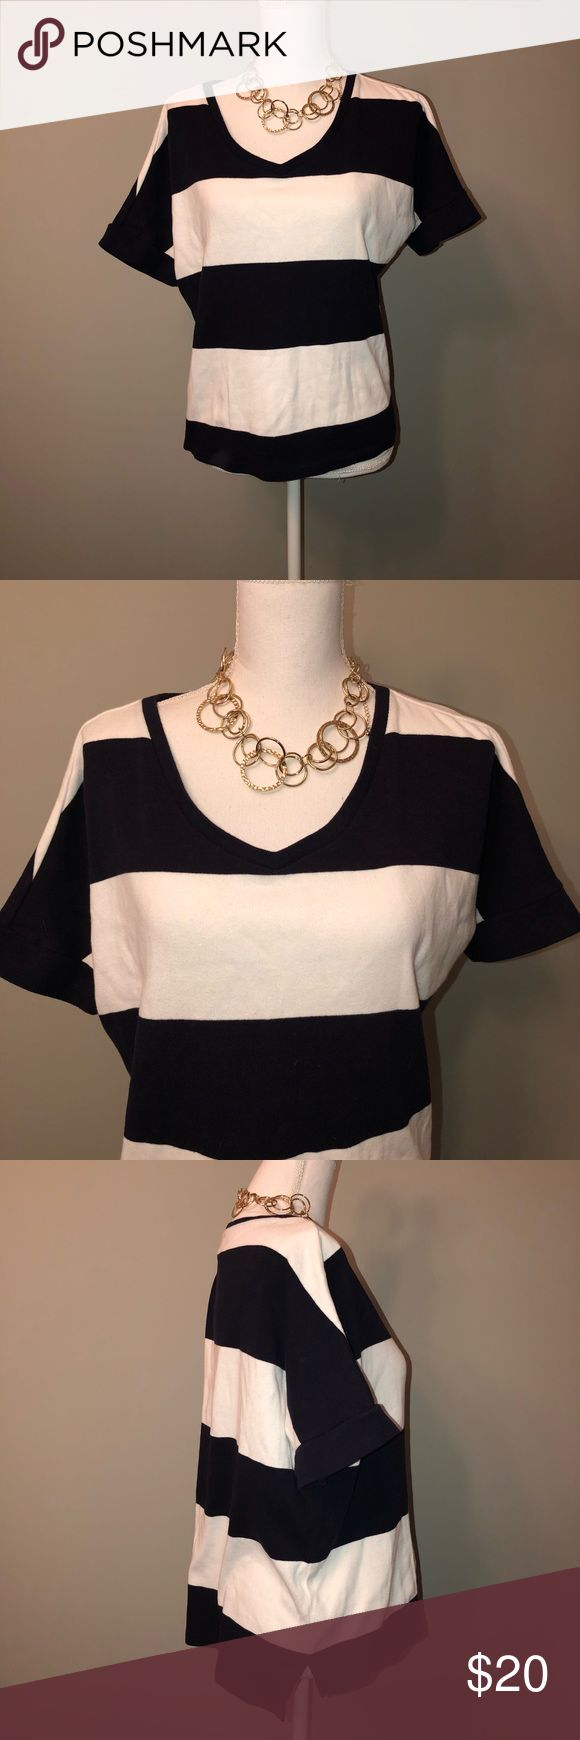 "Talbots blue white stripe top women size large Necklace not included *** Preowned in excellent condition Talbots sweater top women size large . Navy blue and white horizontal stripes. Thick sweater like shirt . Scoopneck. Short sleeves . Stretchy. 100% Cotton  No piling , stains or tears Smoke free/pet free Measurements are taken laid flat  Underarm to underarm 23"" Underarm to bottom seam 13"" Shoulder to shoulder 17"" Talbots Tops Sweatshirts & Hoodies"